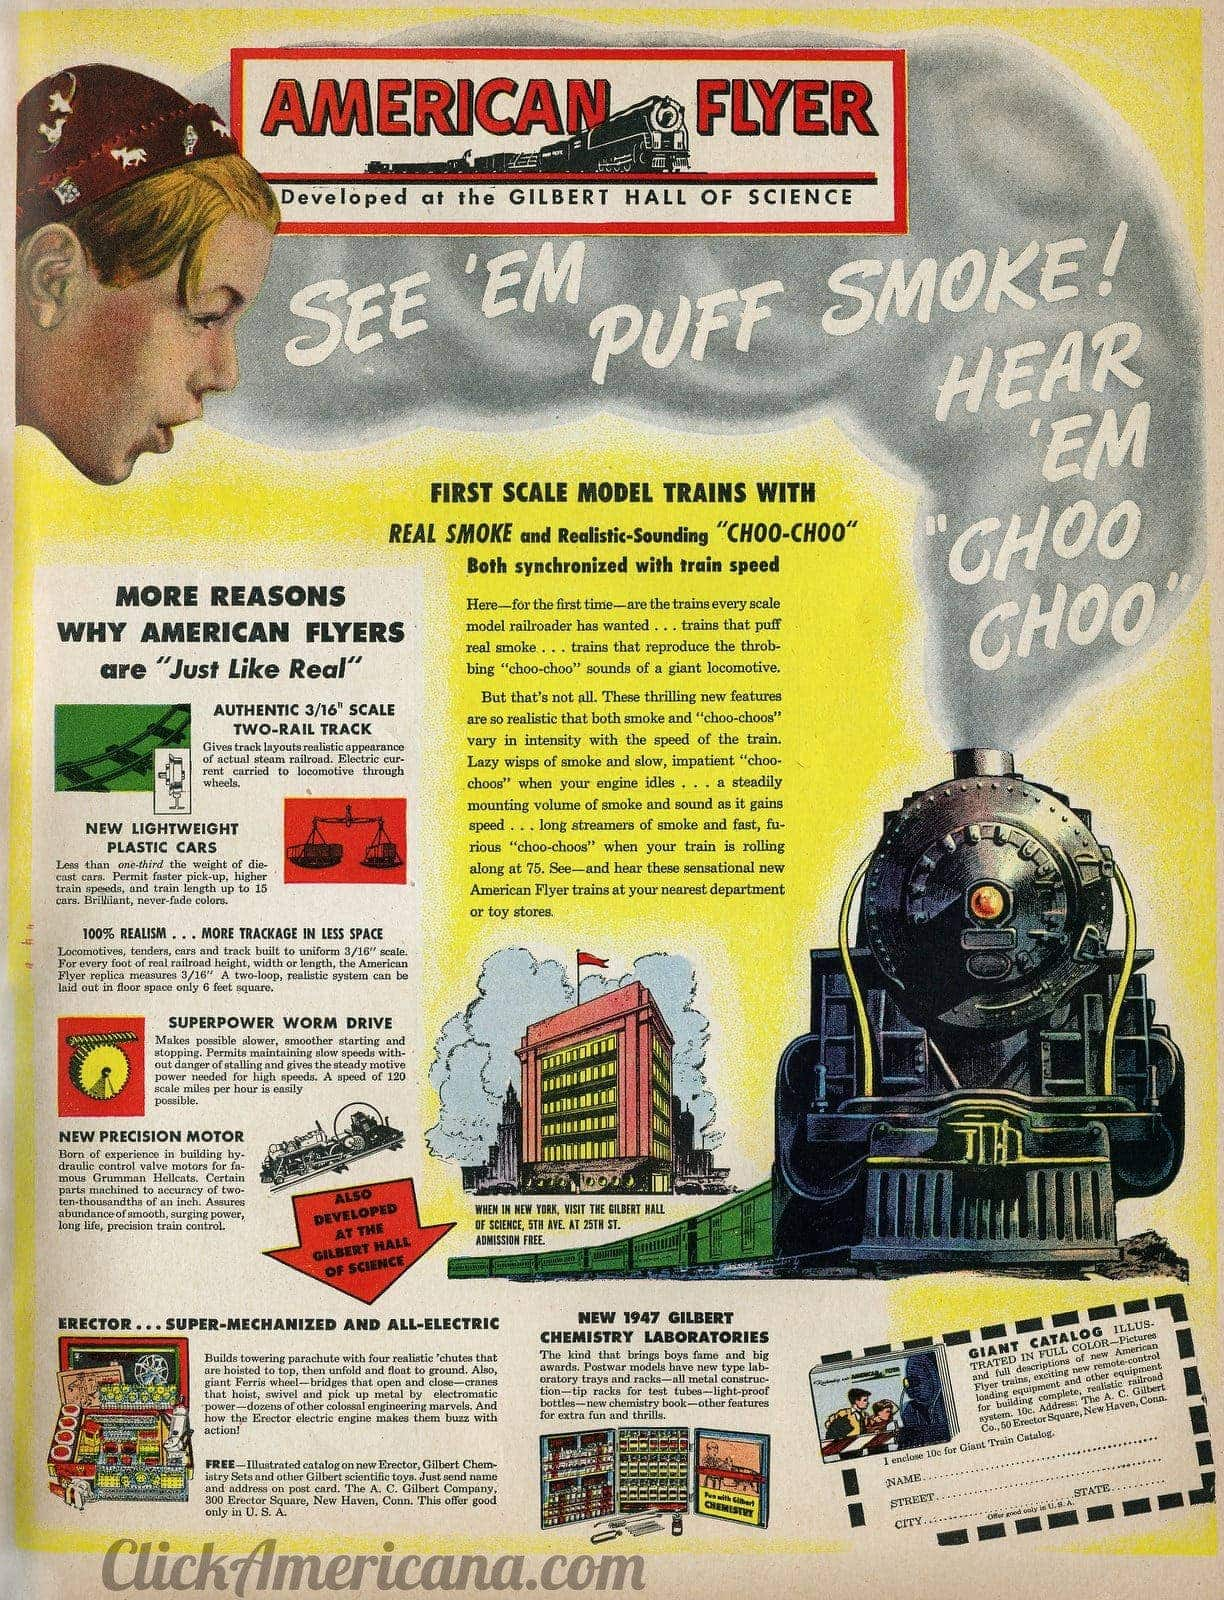 American Flyer Model Trains With Smoke 1946 Click